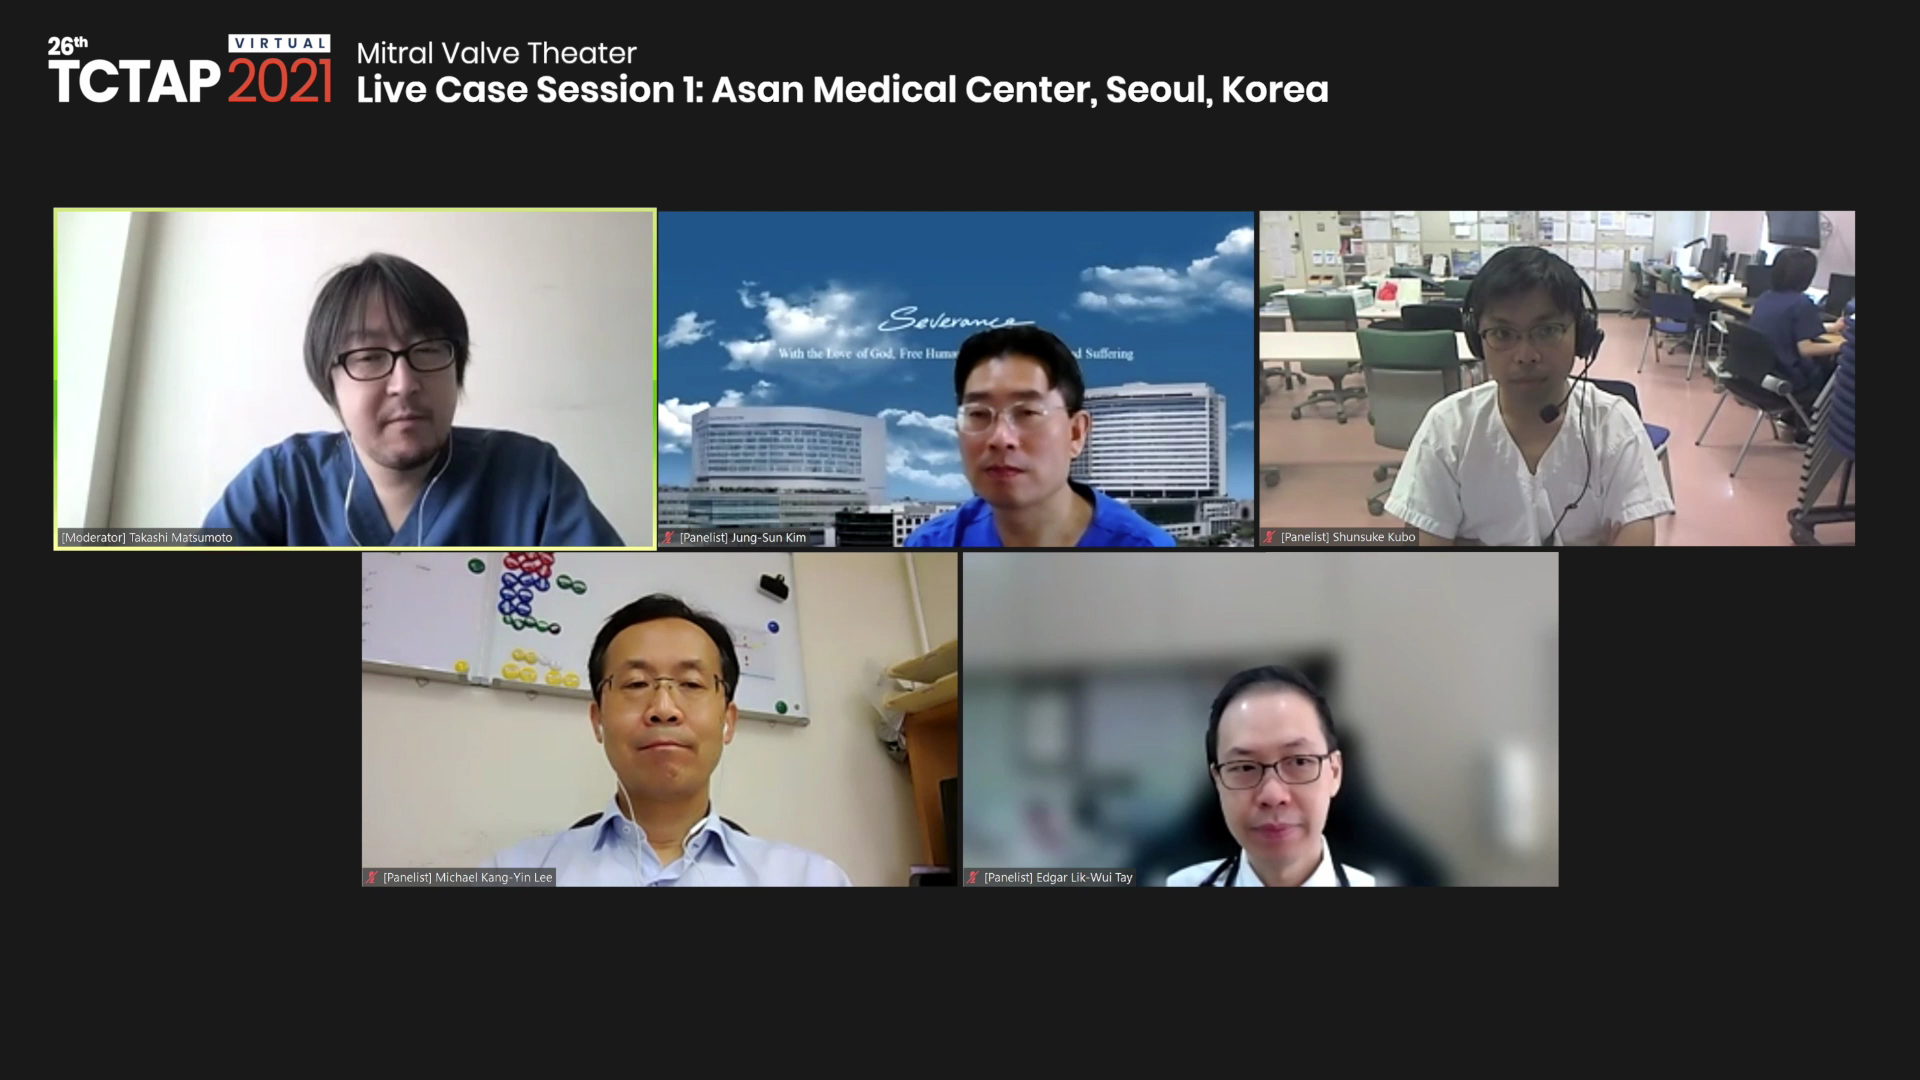 [TCTAP 2021 Virtual] Mitral Valve Theater - Live Case Session 1